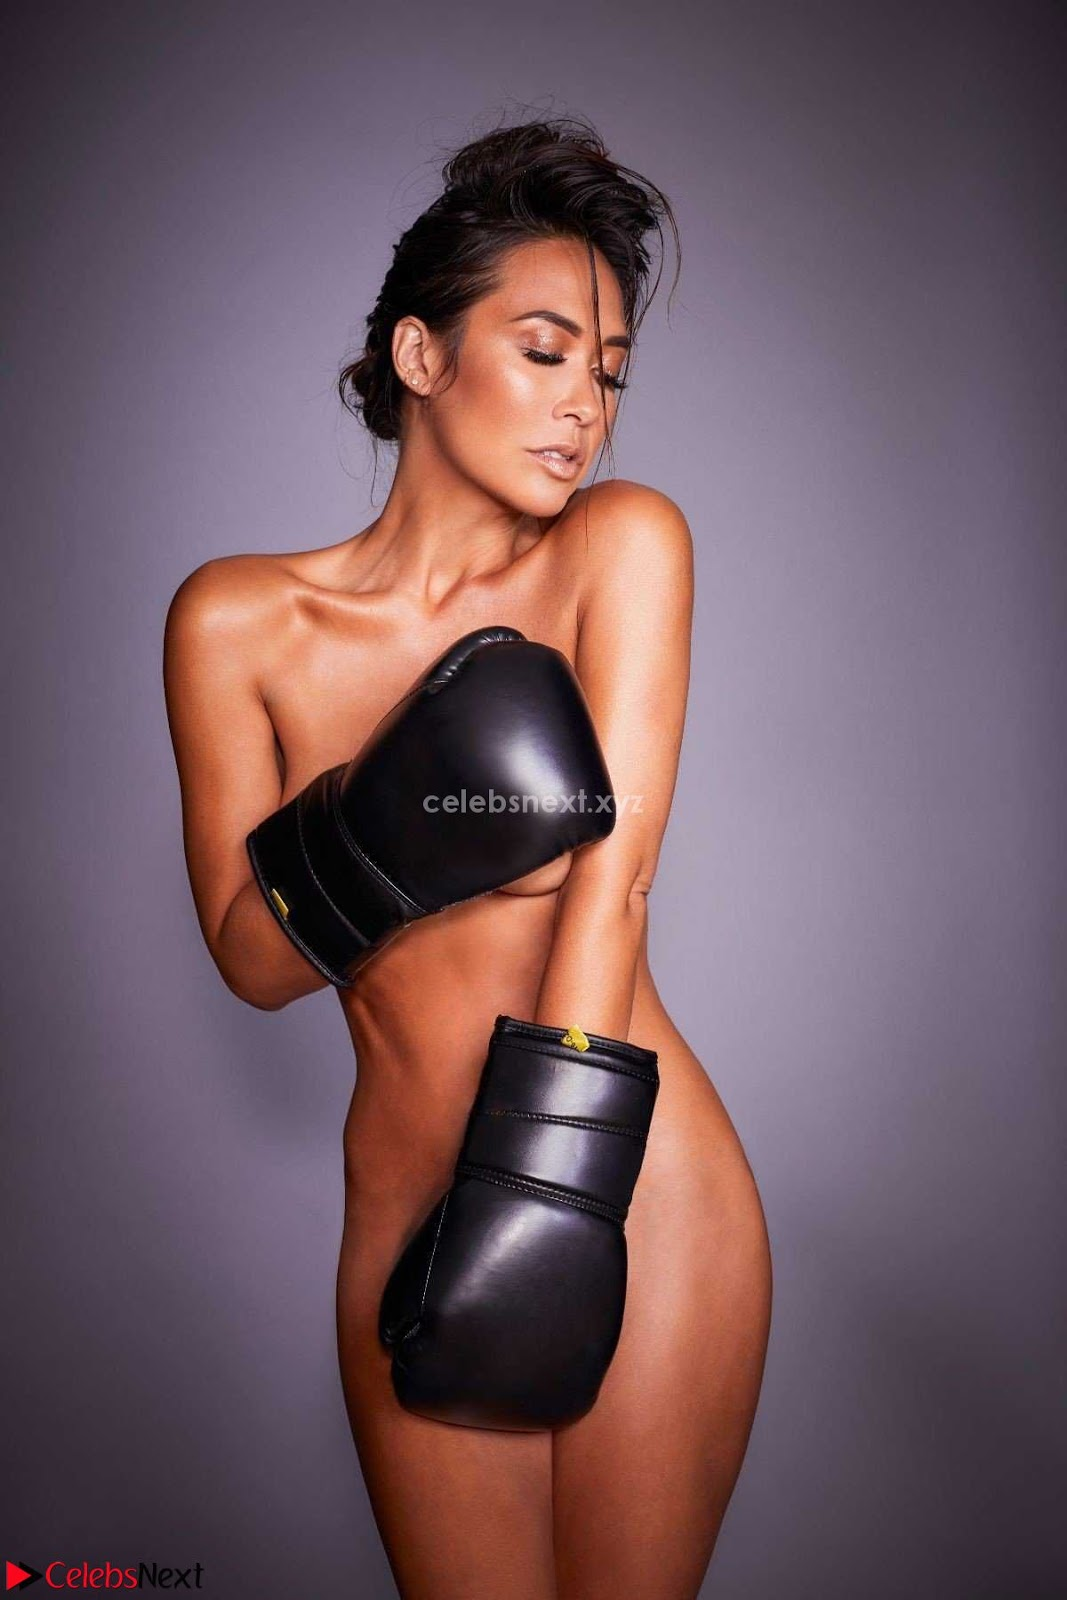 Myleene Klass Nude Beautiful Boobs and Pussy Covered with Boxing Gloves WOW